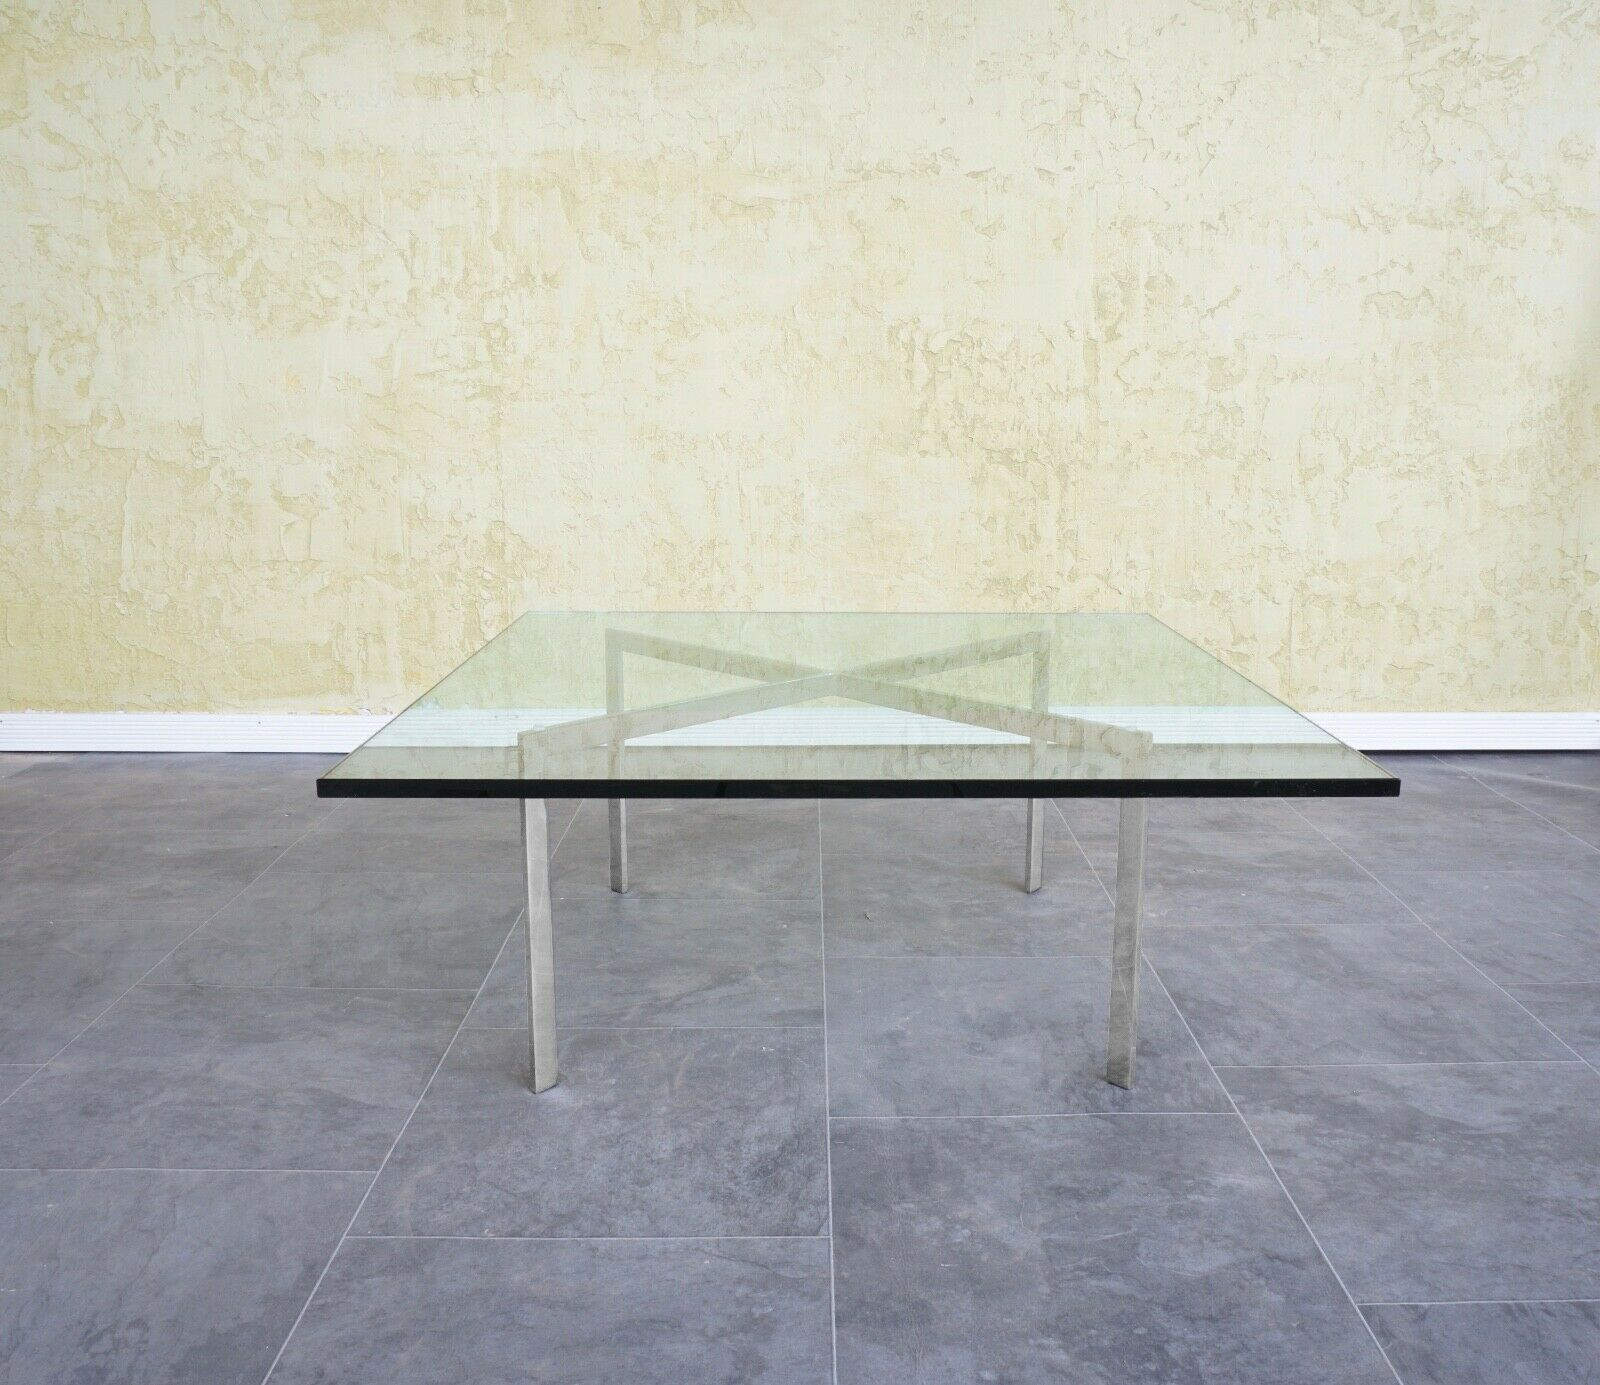 Modernist Barcelona Coffee Table By Mies Van Der Rohe - $1,070.00